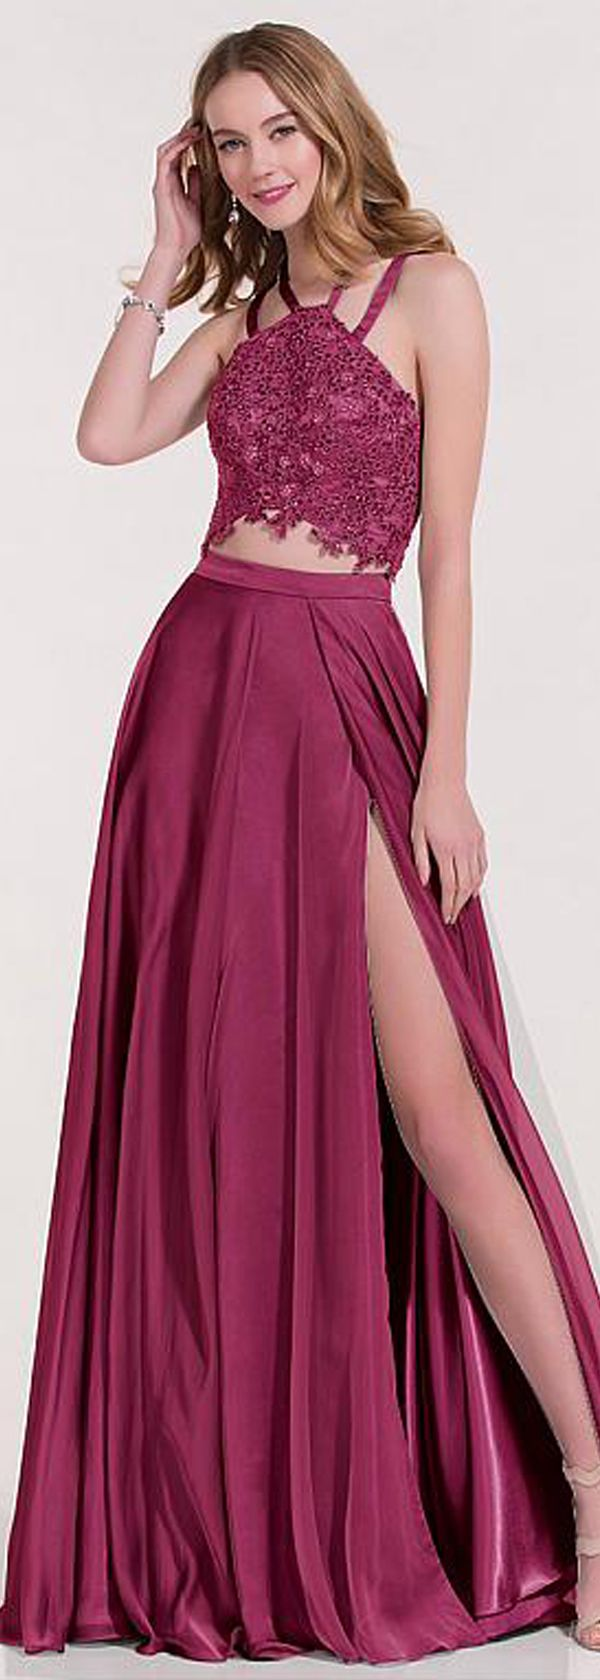 Honorable Silk-like Chiffon Halter Neckline Two-piece A-line Prom ...